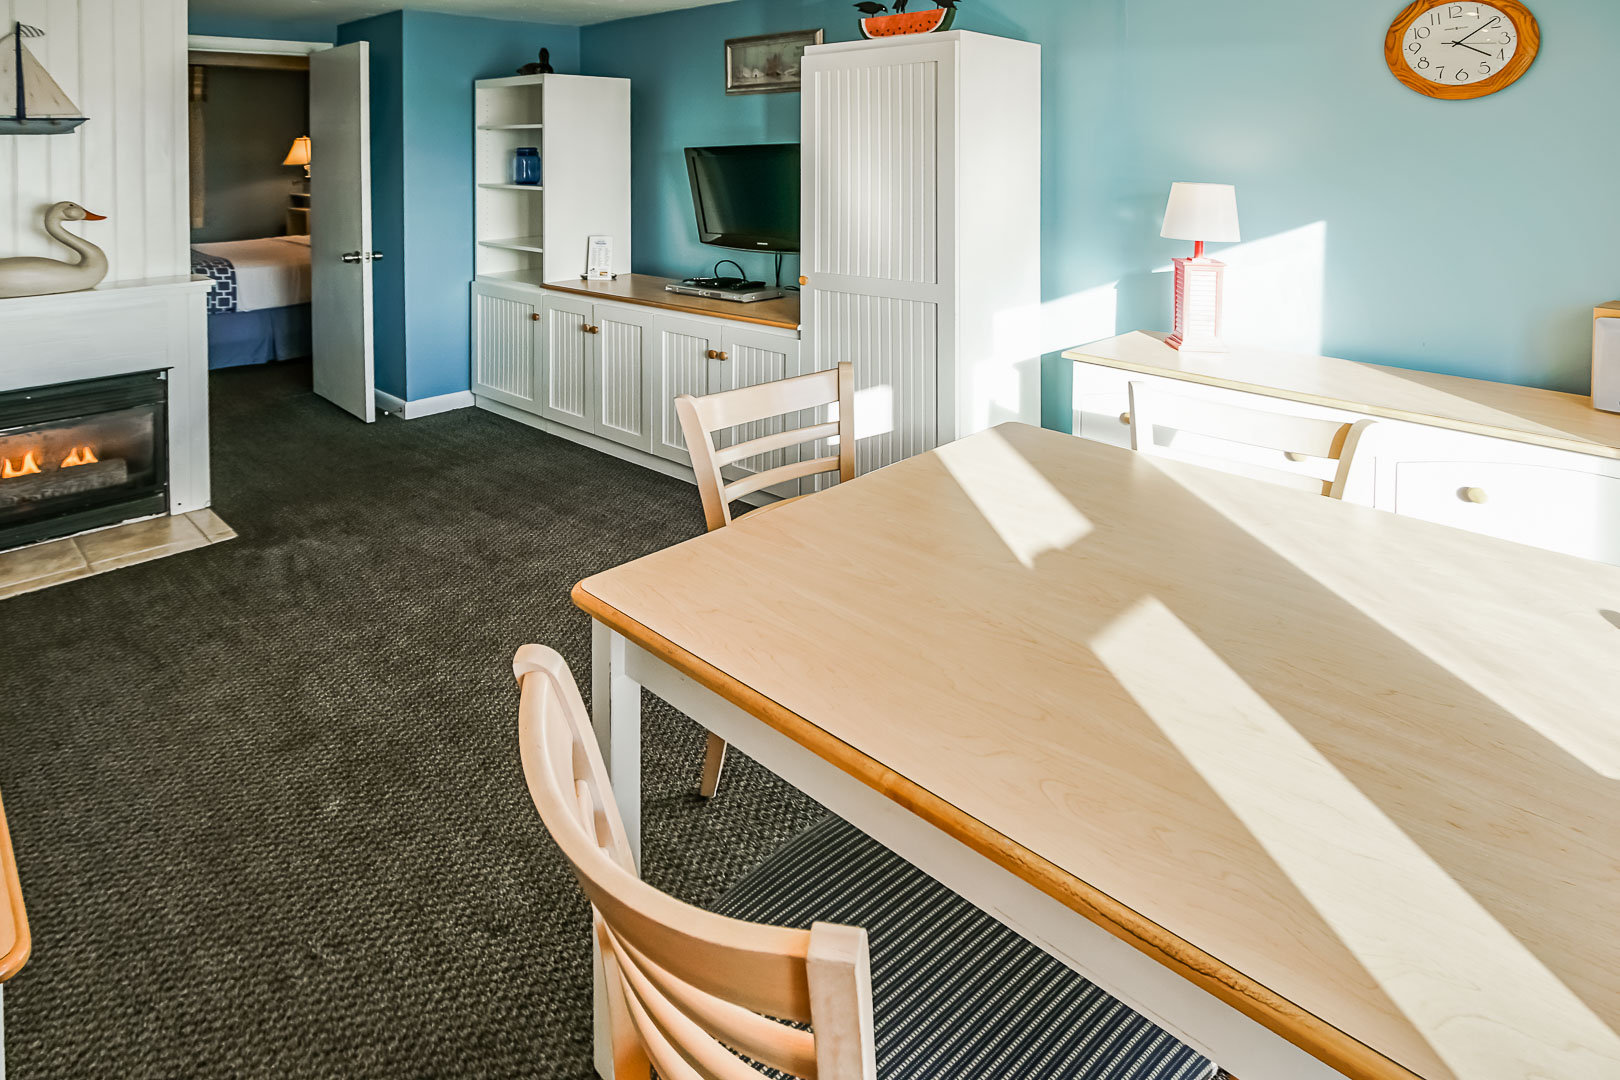 A cozy living room and dining room area at VRI's Seawinds II Resort in Massachusetts.